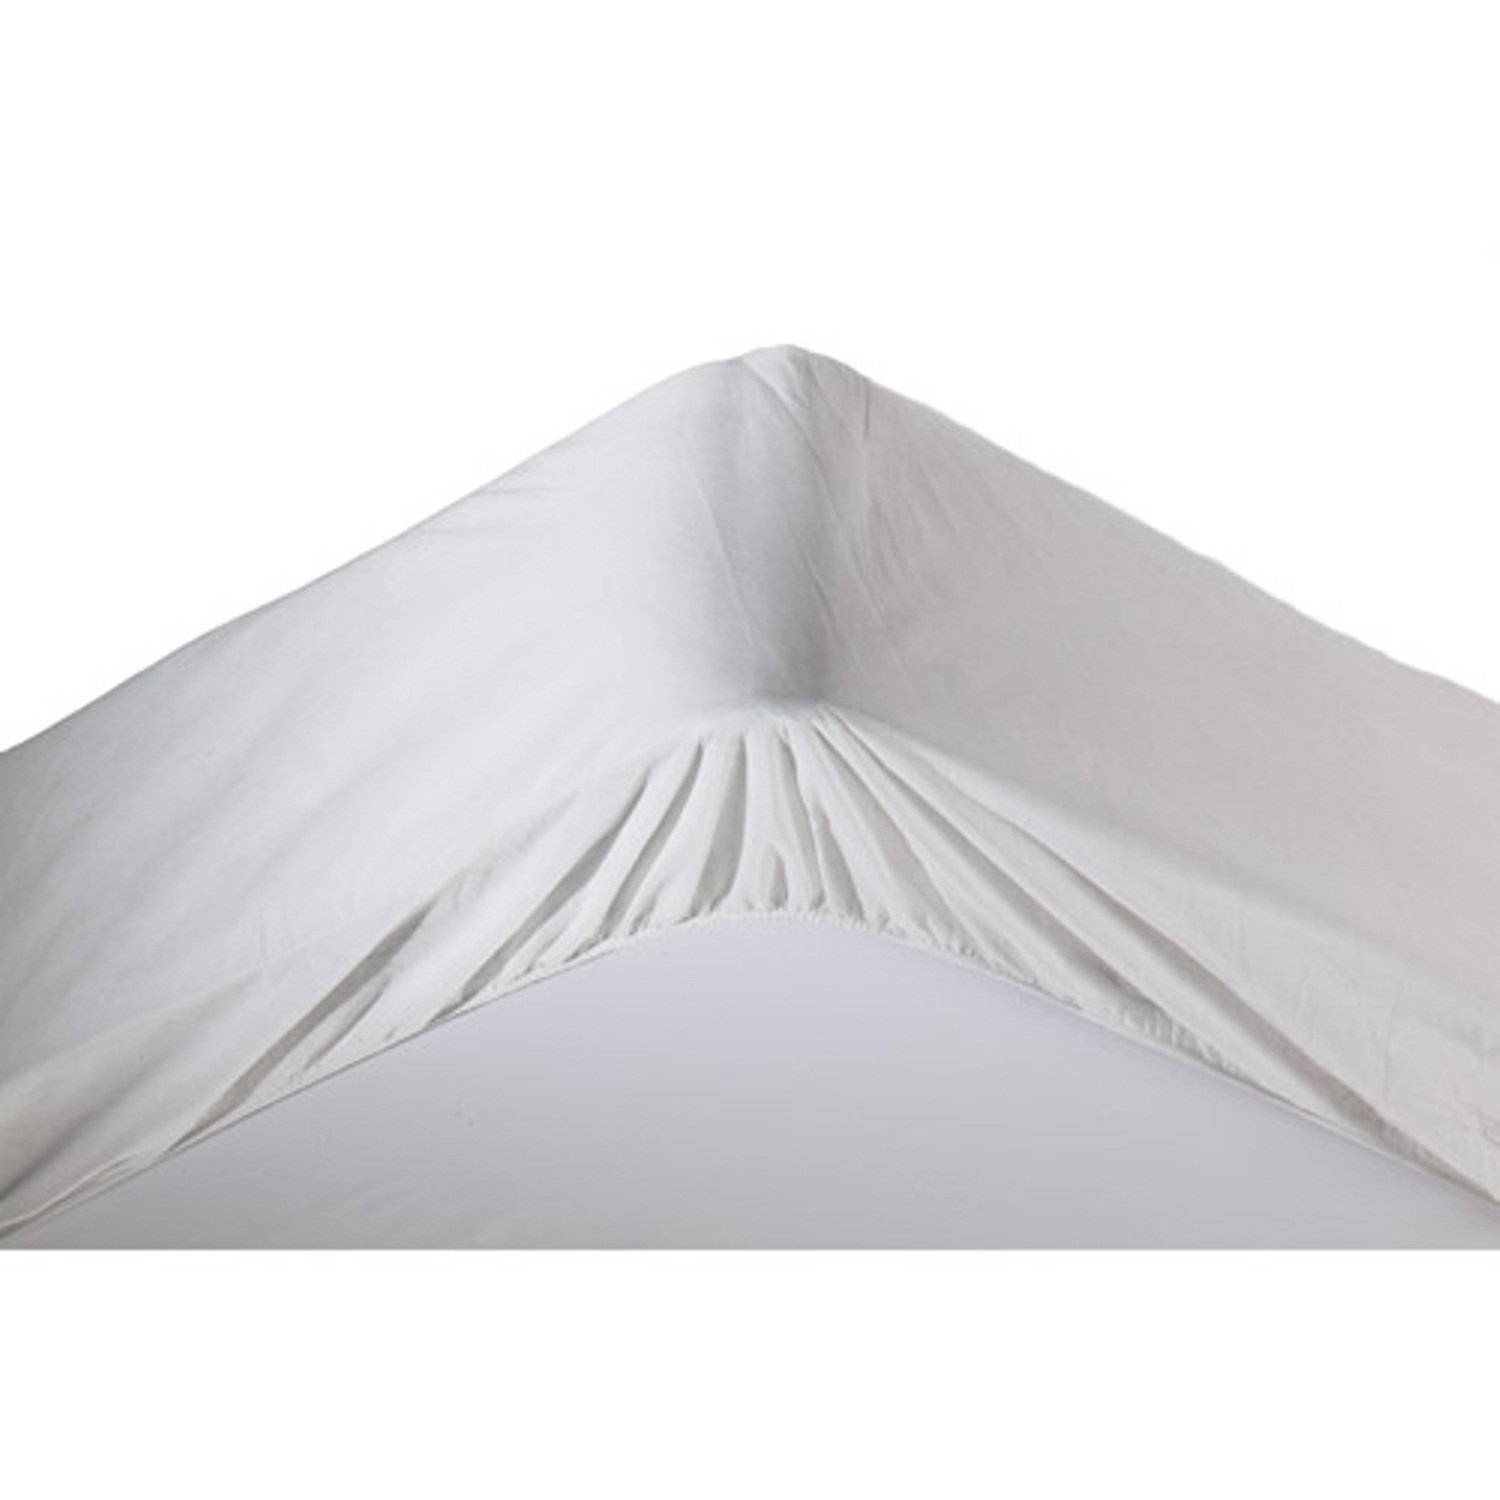 a mattress single cover plastic